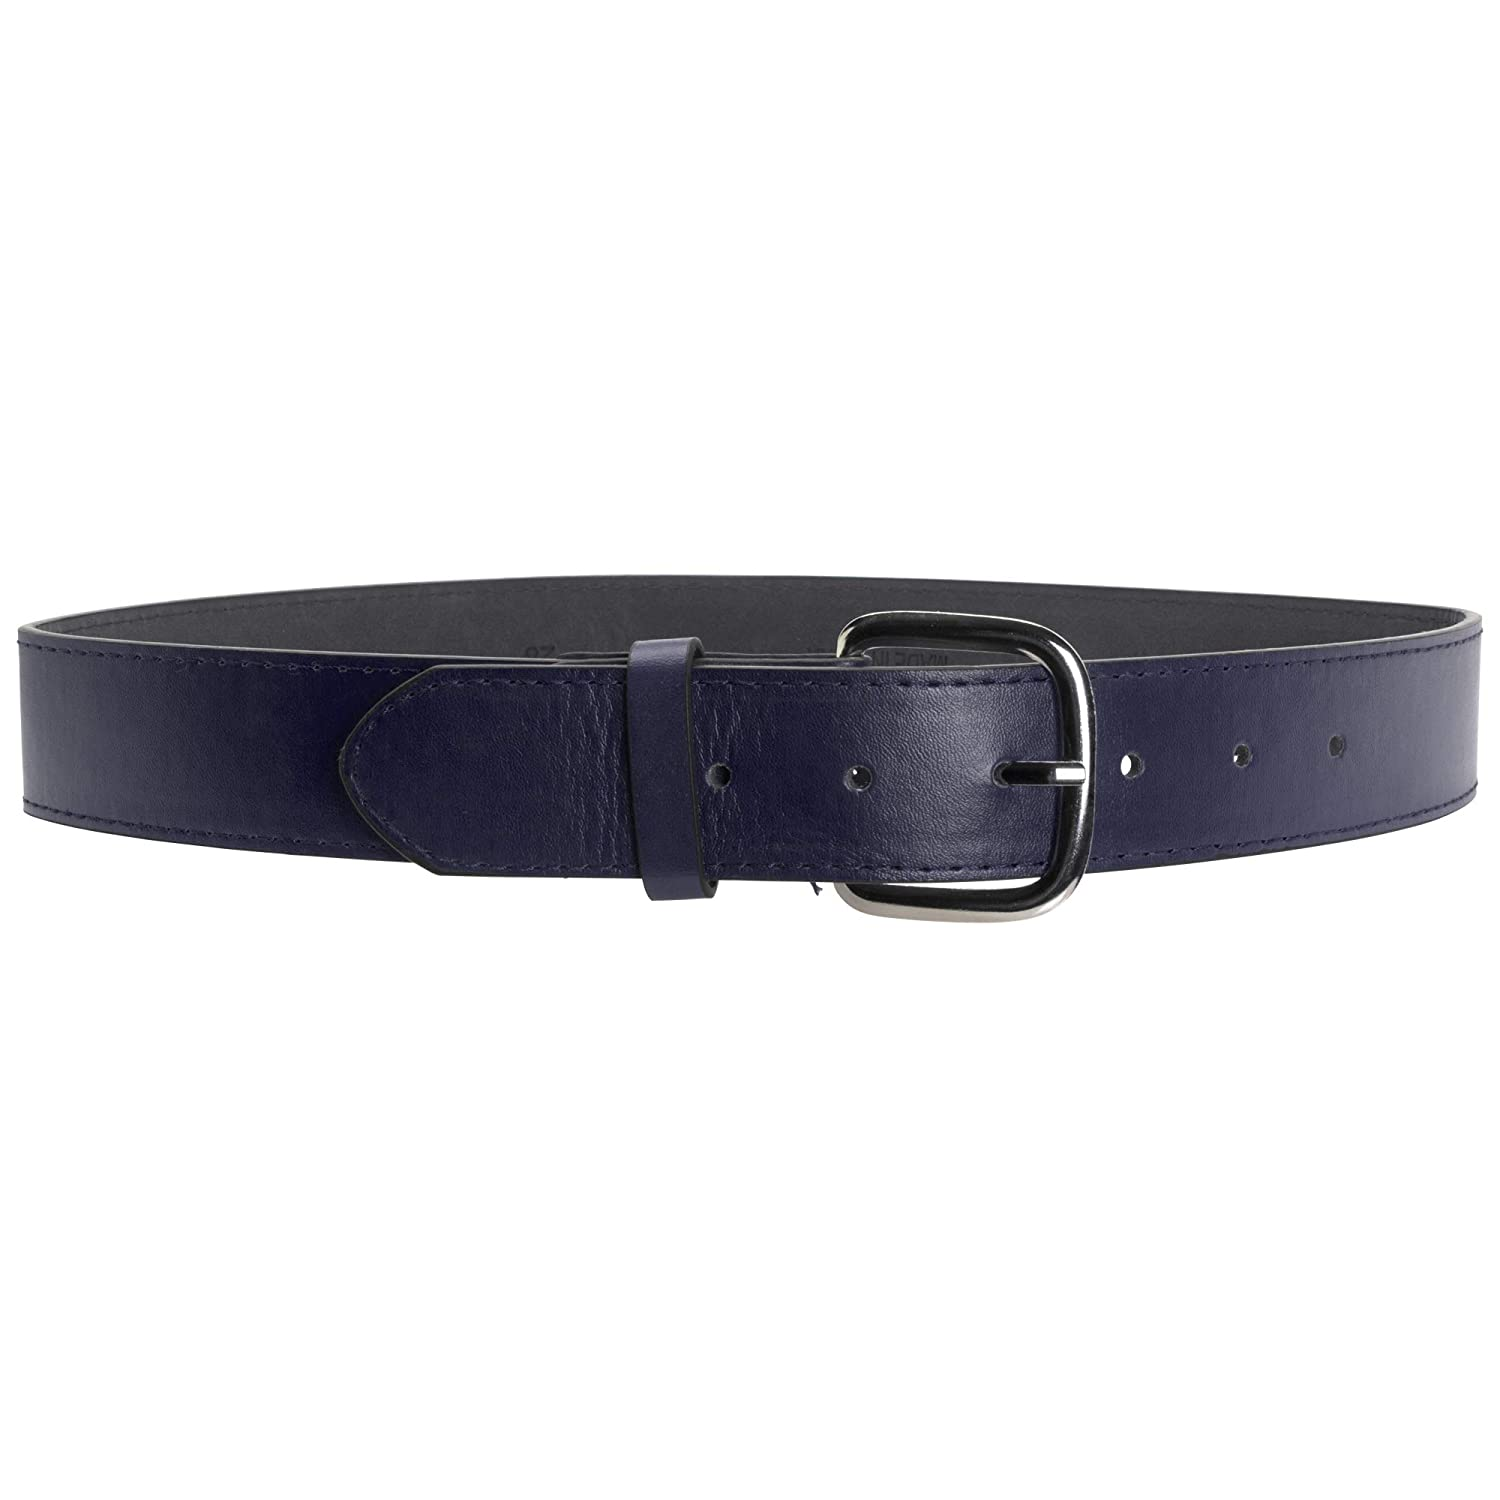 Adams Adult Synthetic Leather Uniform Baseball/Softball Belt